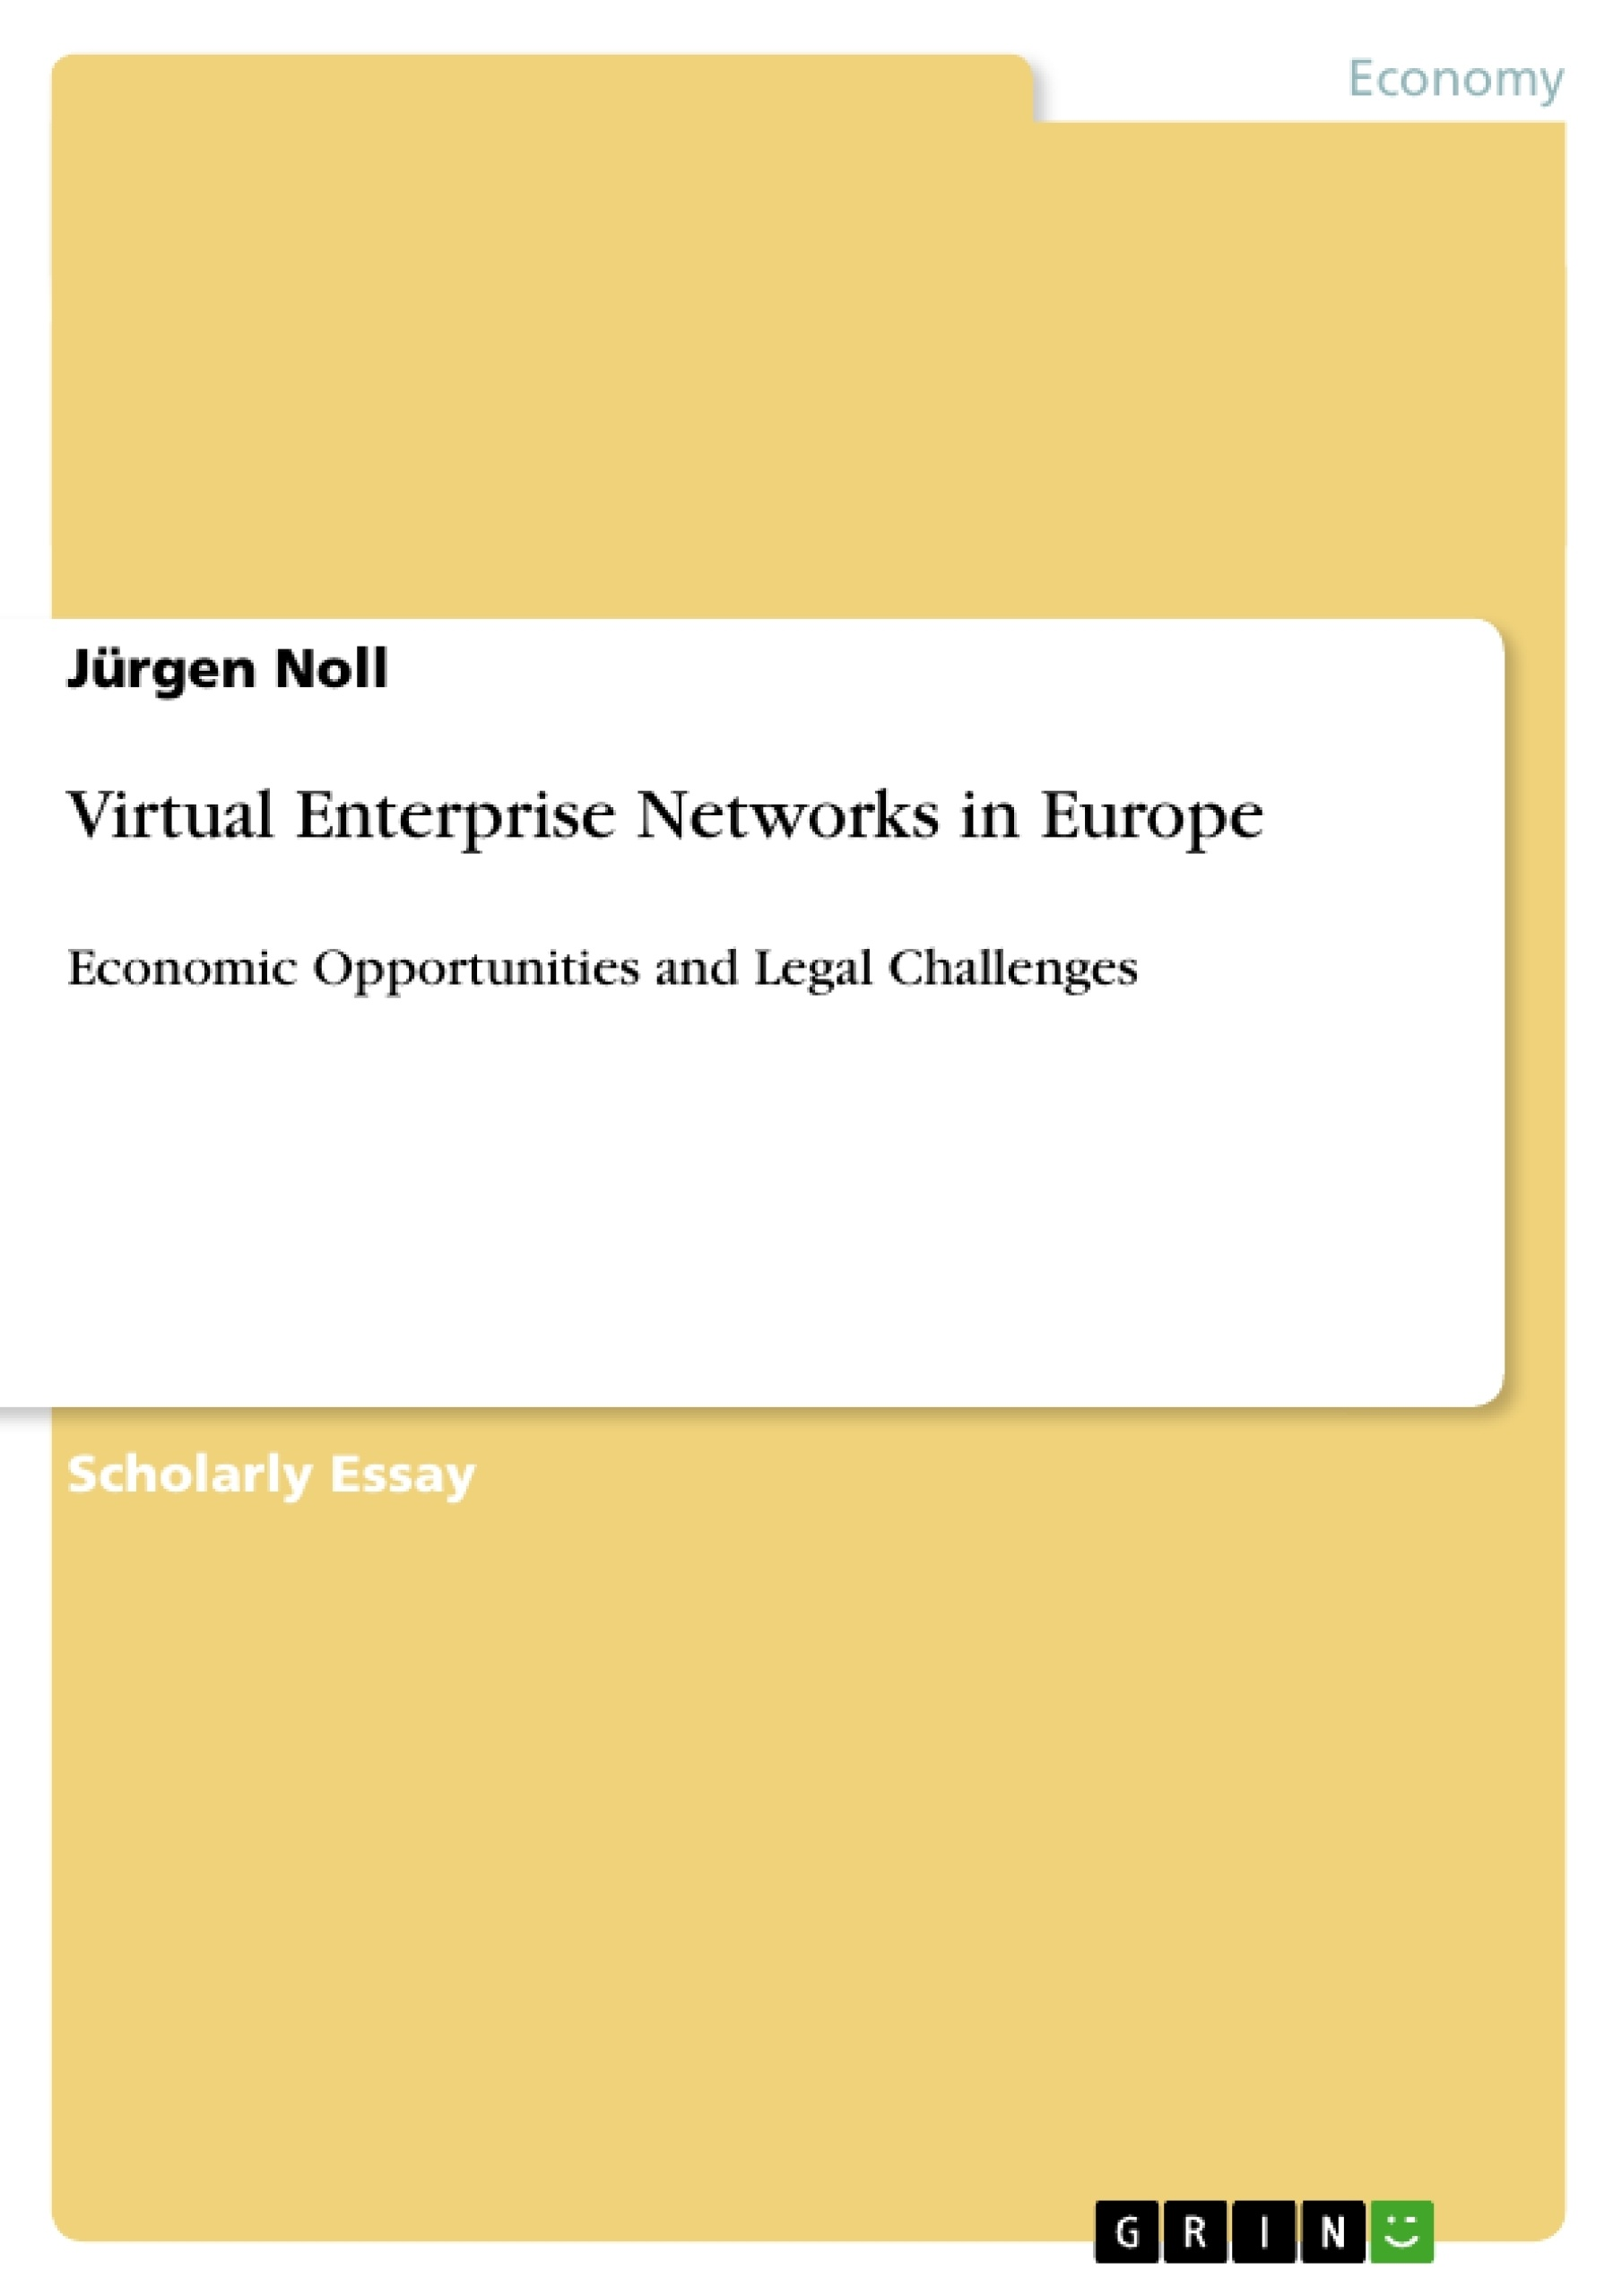 Title: Virtual Enterprise Networks in Europe